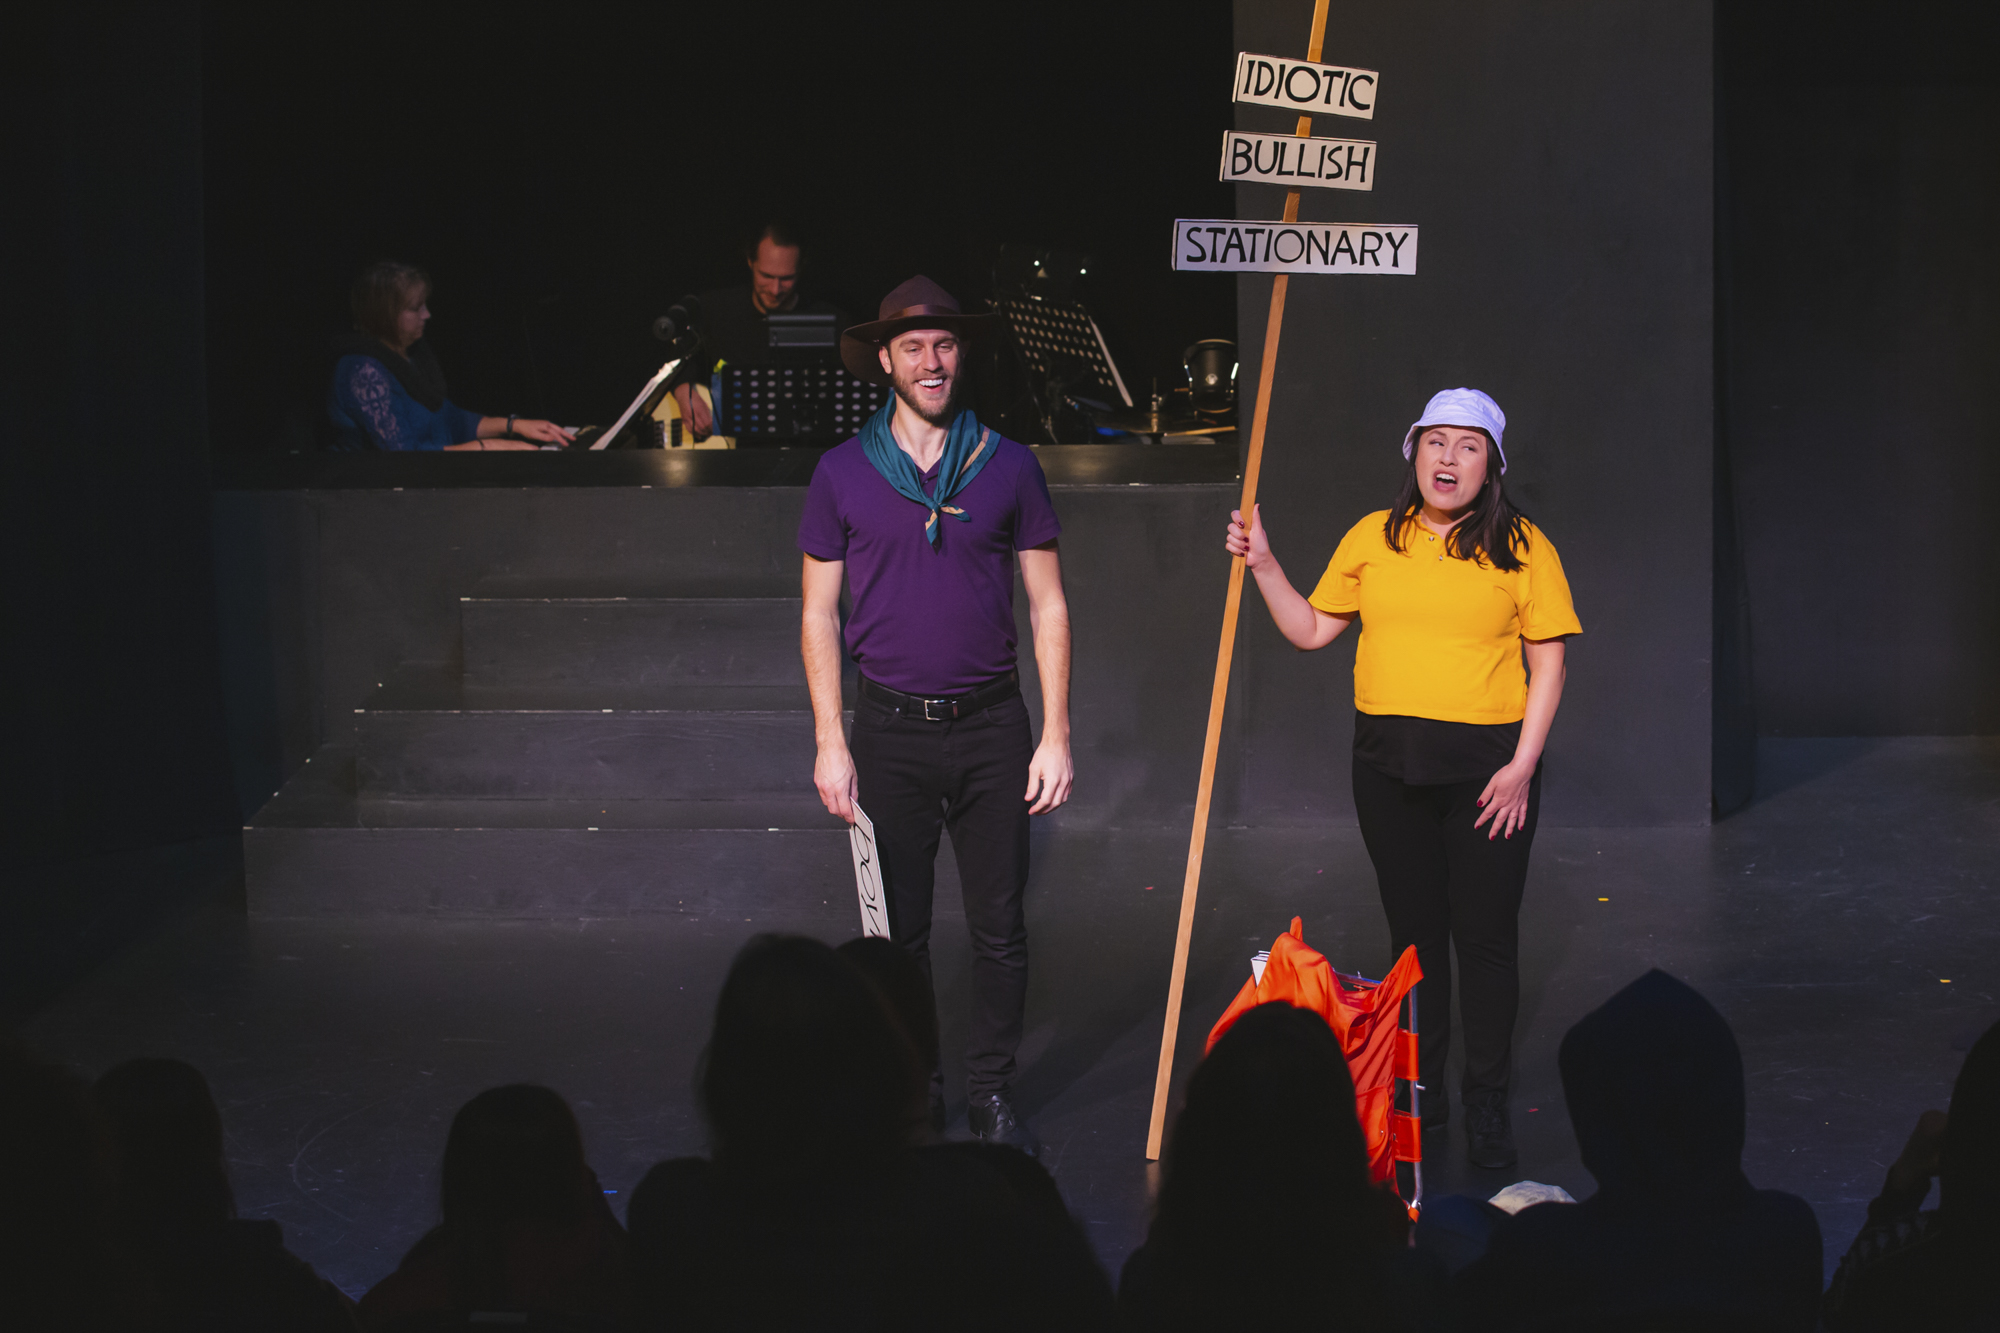 <p>Conjunction junction - what's your function? ReAct Theater is taking us all back in time to celebrate the American institution that was Schoolhouse Rock with live performances almost every day through November 17, 2018. The animated, educational series of musical shorts ram from 1973 - 1985, and covered everything from history, grammar, math, science and politics. More info and tickets at{&amp;nbsp;}brownpapertickets.com/event/3620882. (Image: Sunita Martini / Seattle Refined)</p>